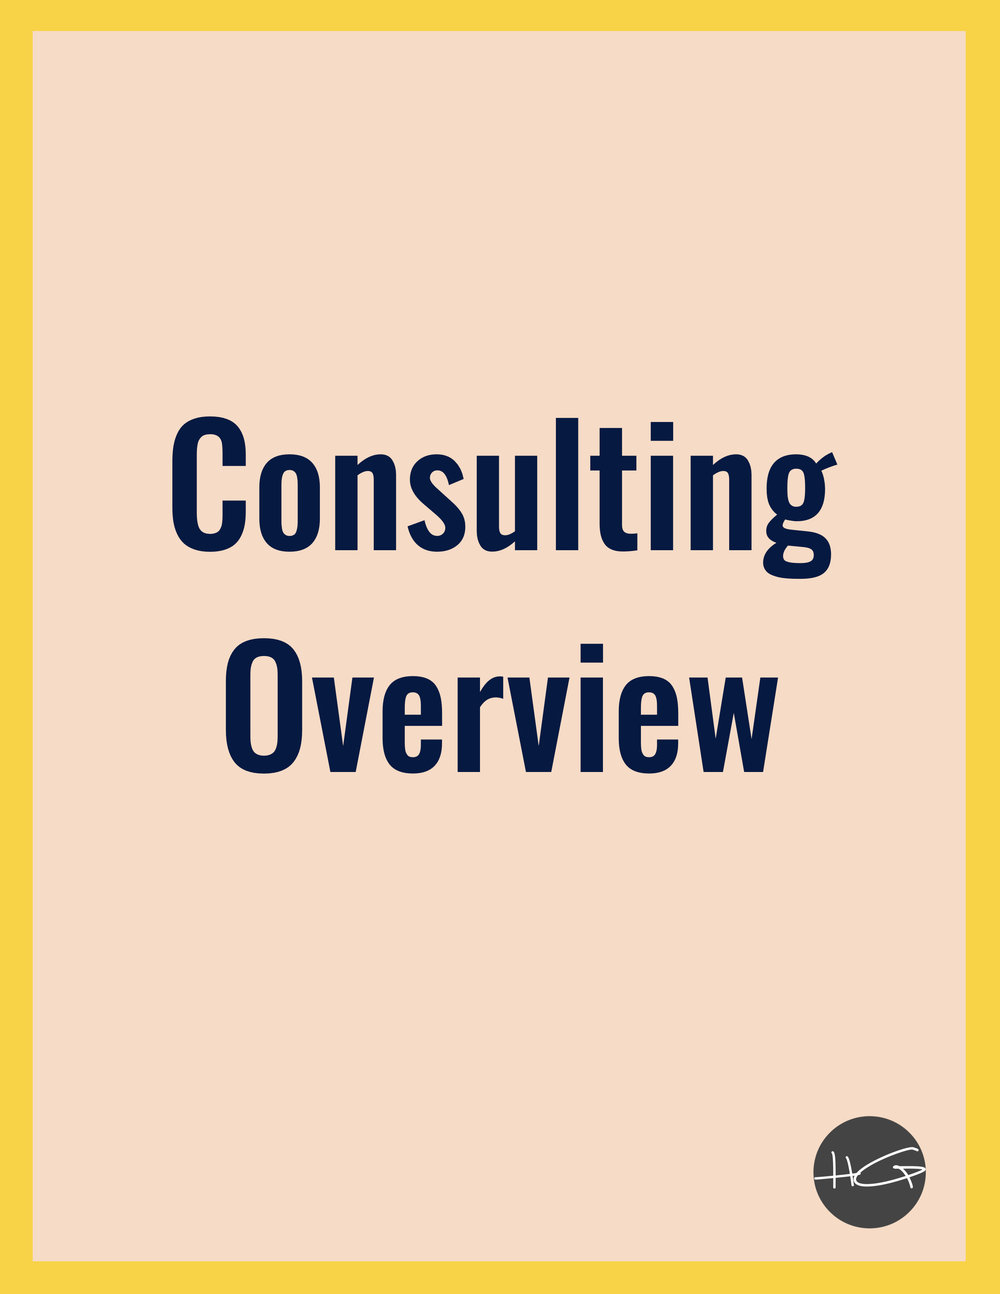 Consulting Overview Image.jpeg